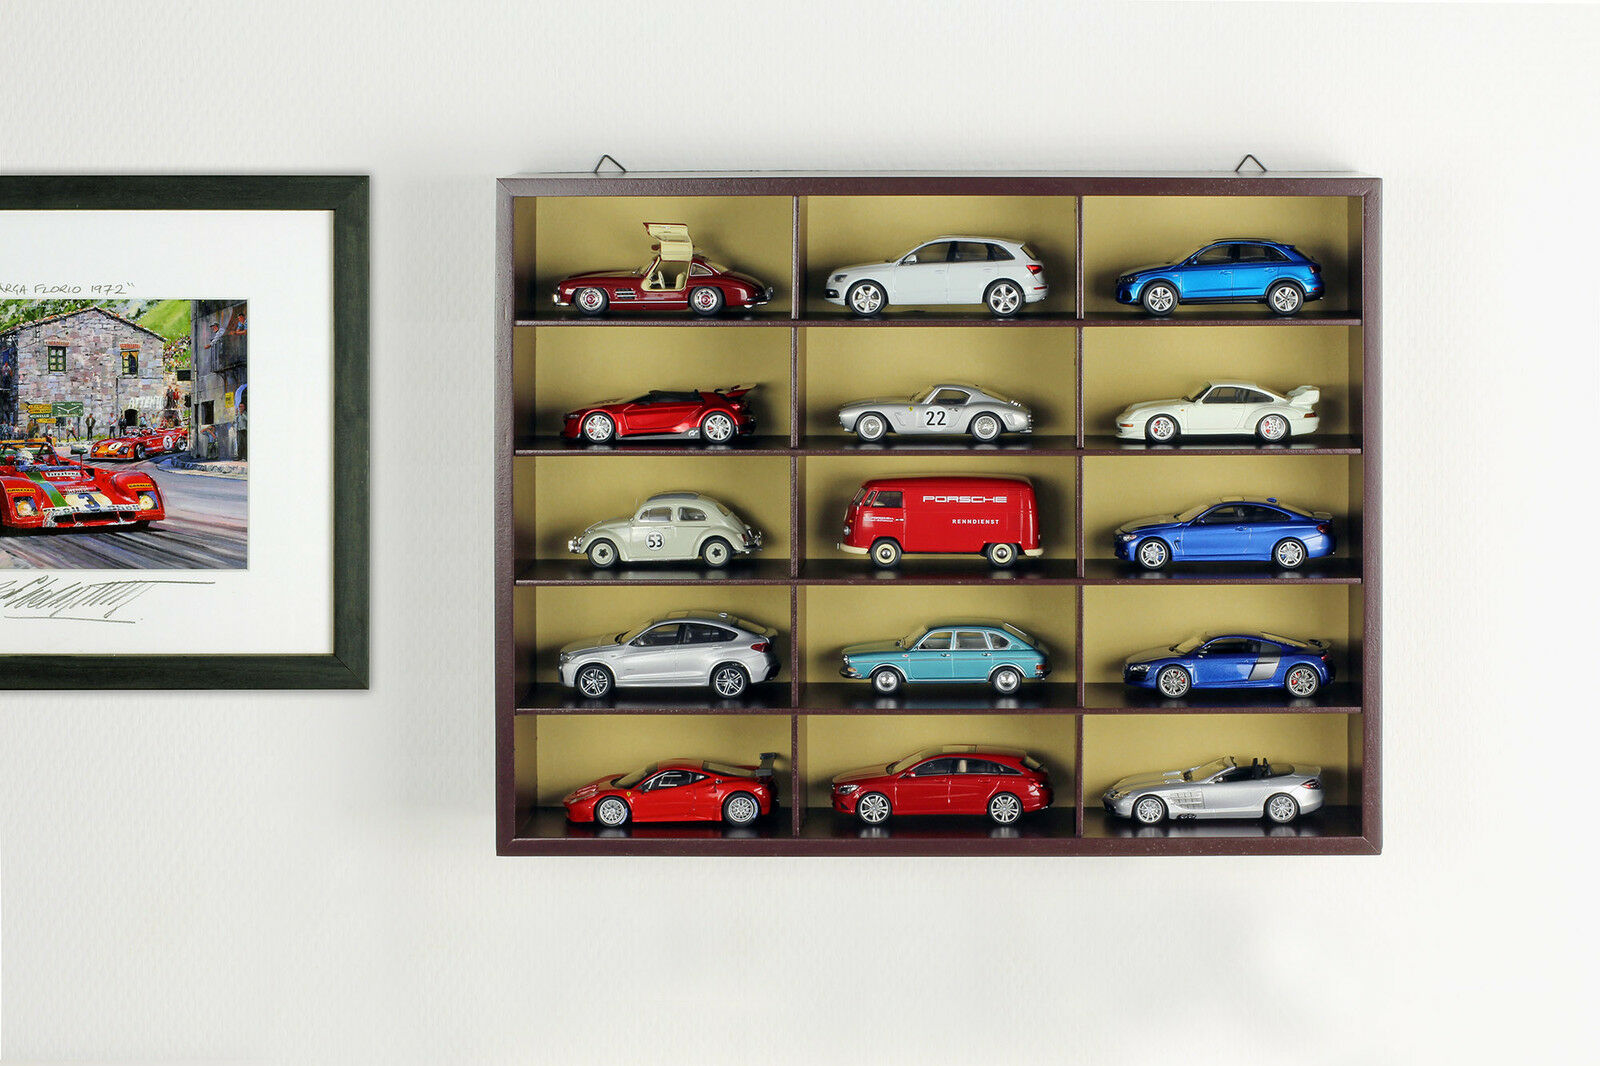 Quality Display Cabinet Wall Showcase Wooden For 15 Model